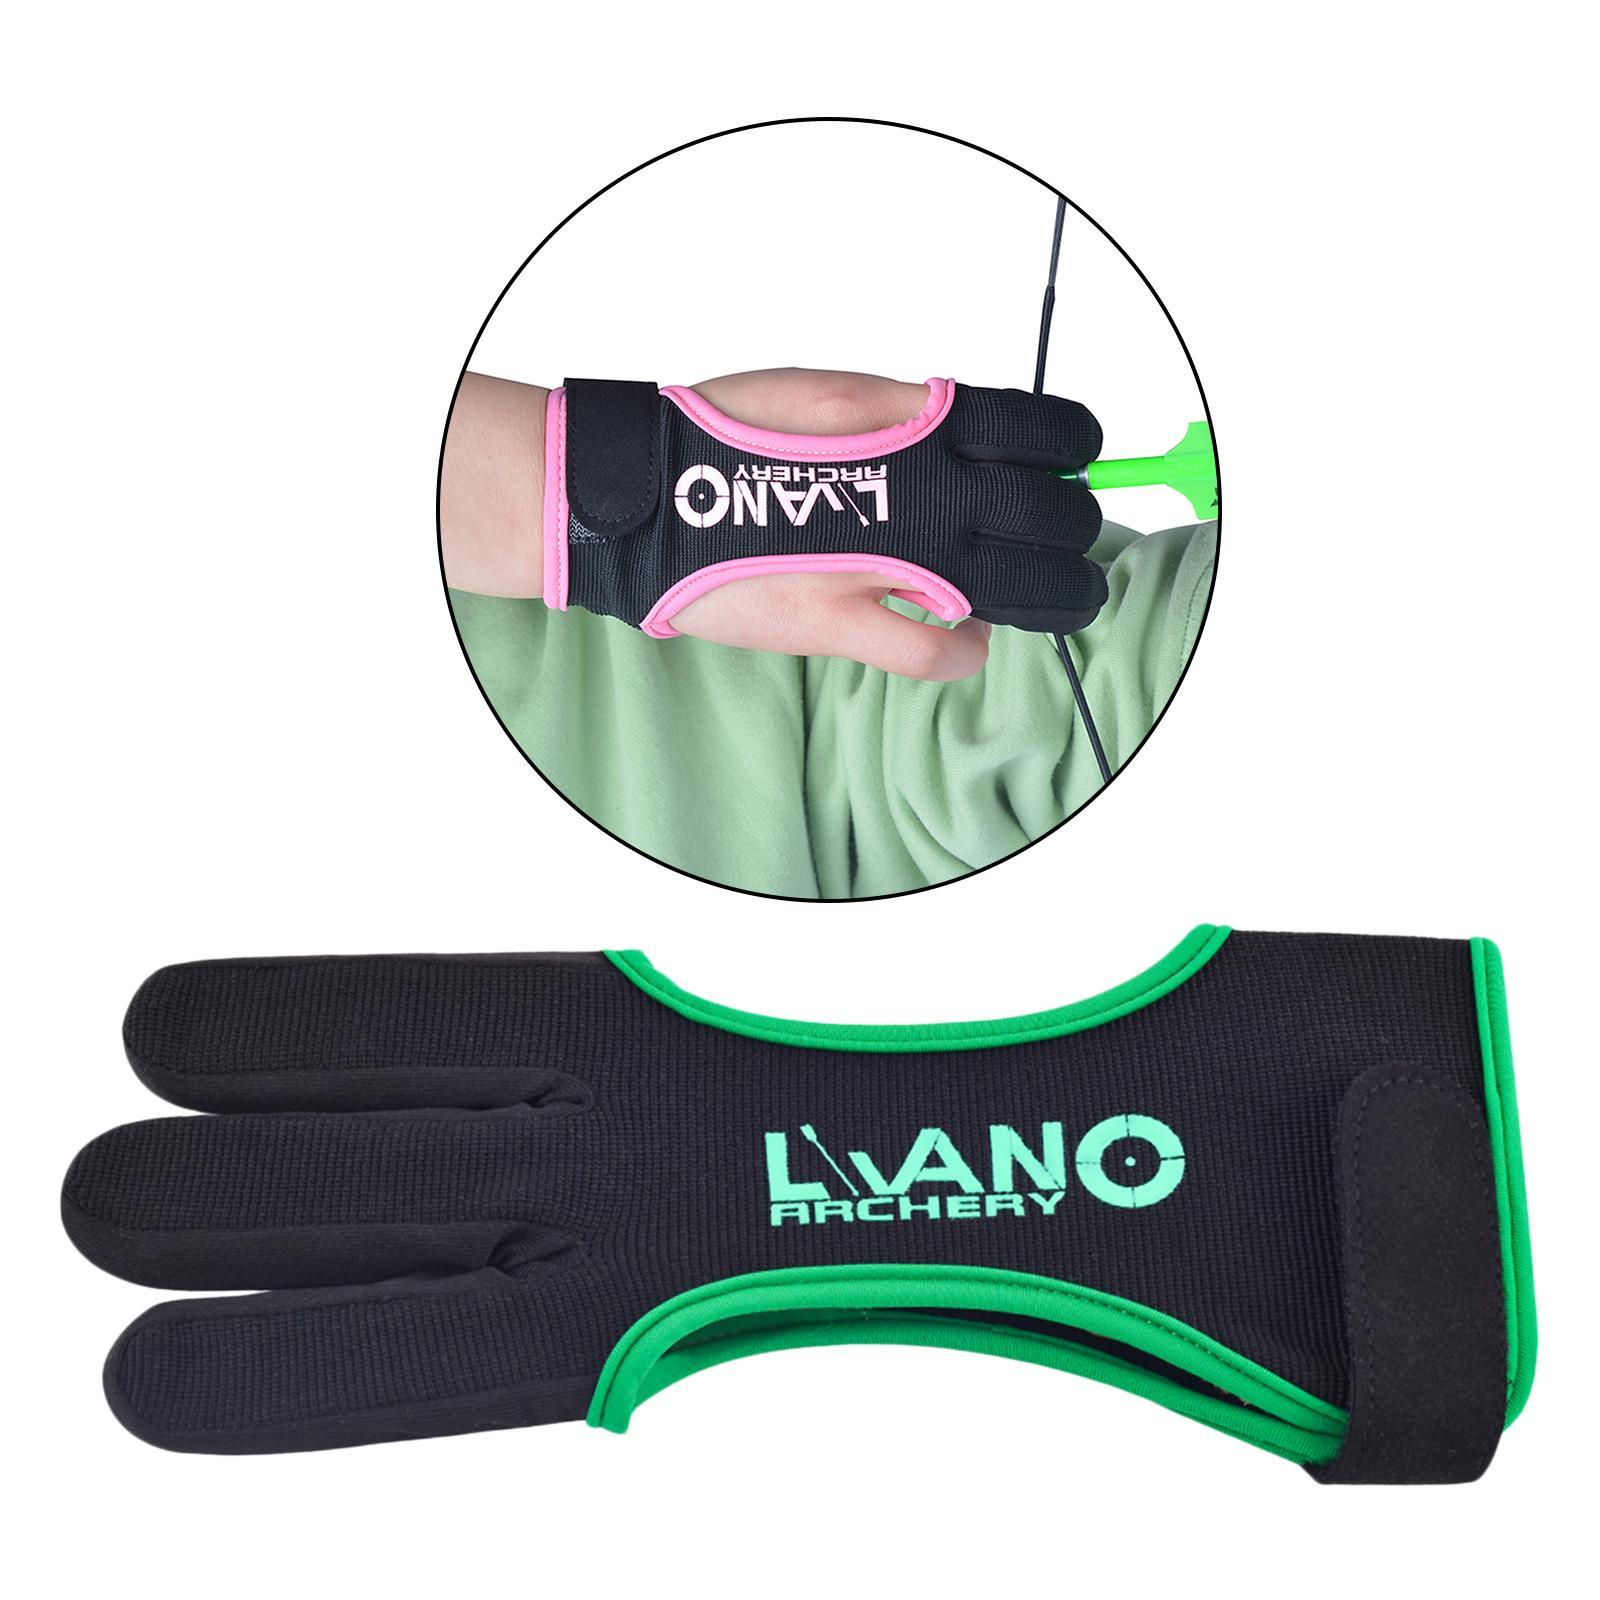 thumbnail 53 - Archery Glove for Recurve & Compound Bow 3 Finger Guard for Women Men Youth